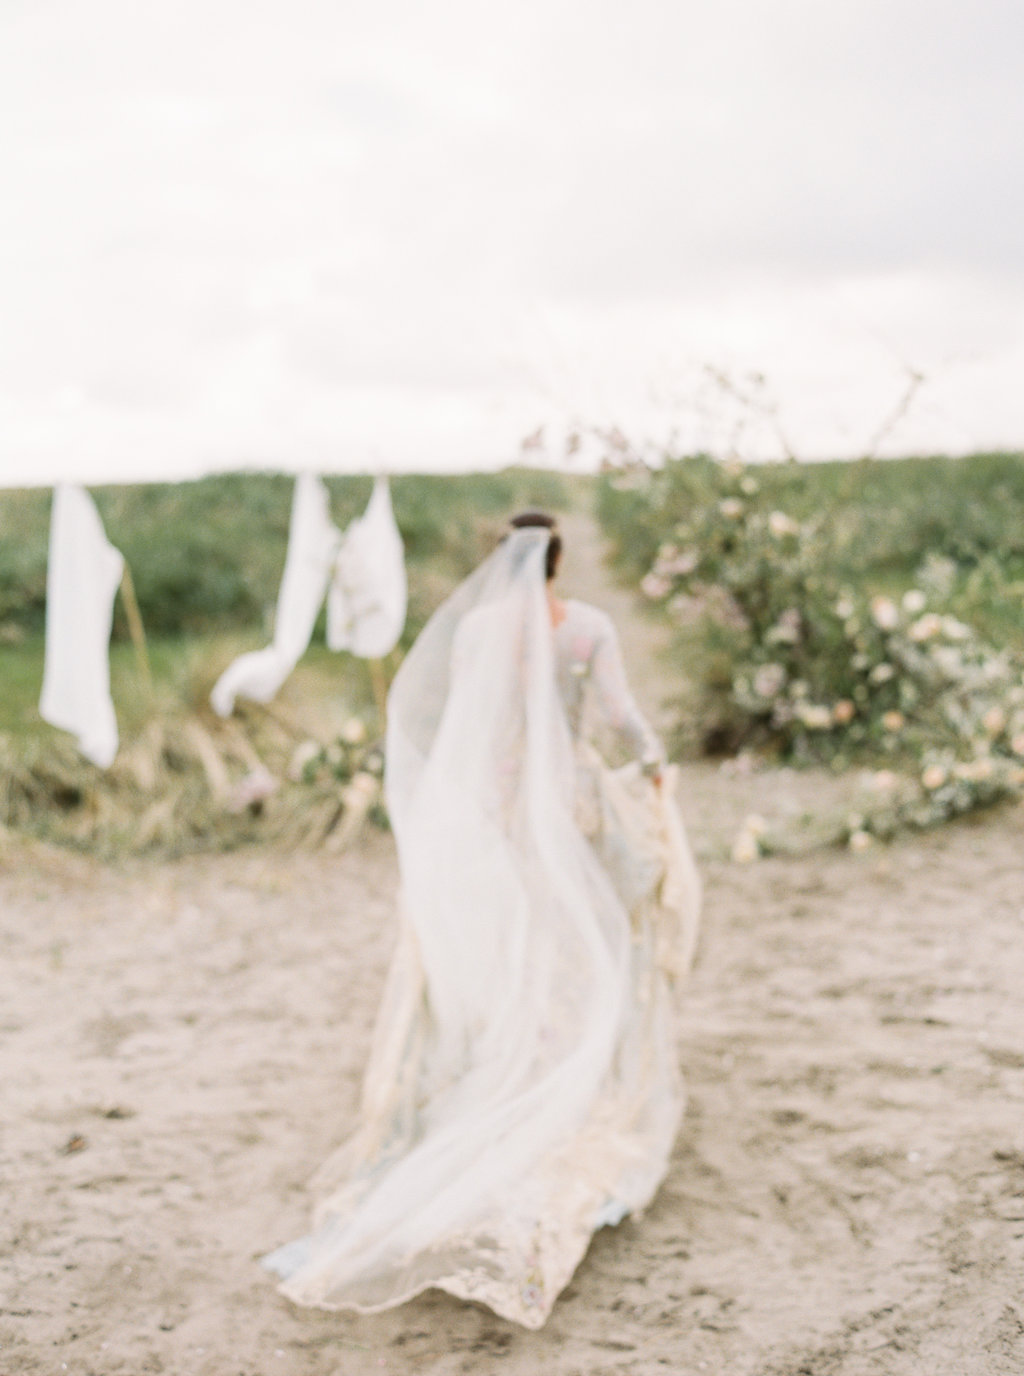 wedding fashion - photo by Be Light Photography http://ruffledblog.com/coastal-oregon-inspiration-with-a-show-stopping-wedding-gown